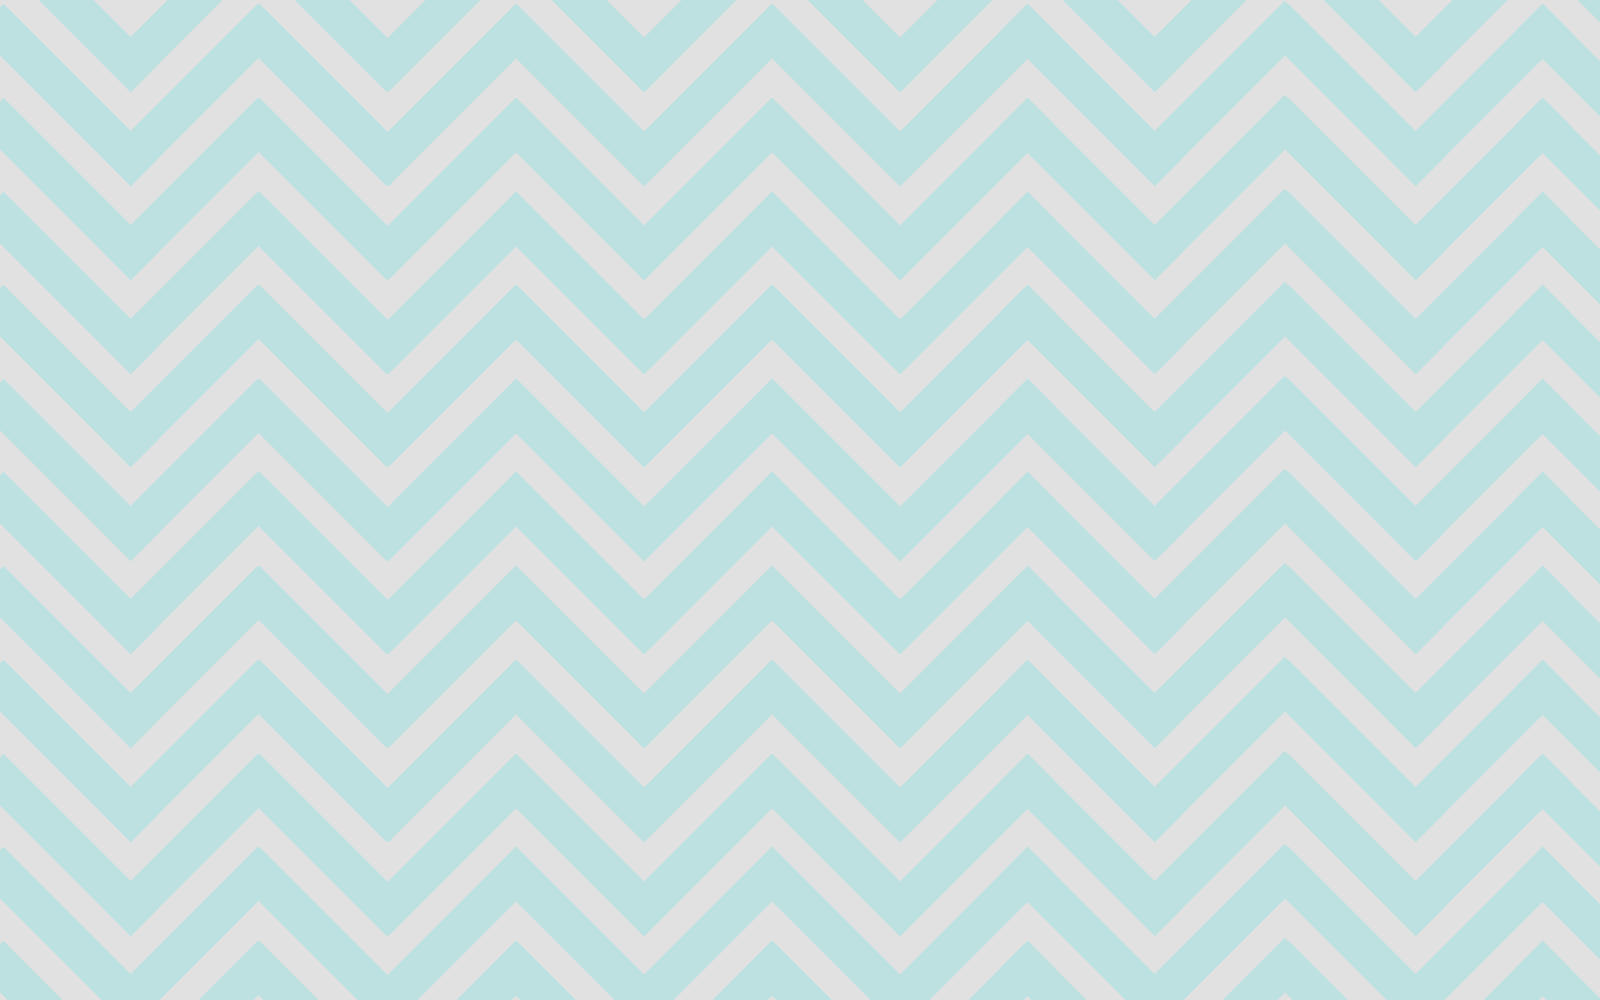 Gray Chevron Free Vector Art  1563 Free Downloads